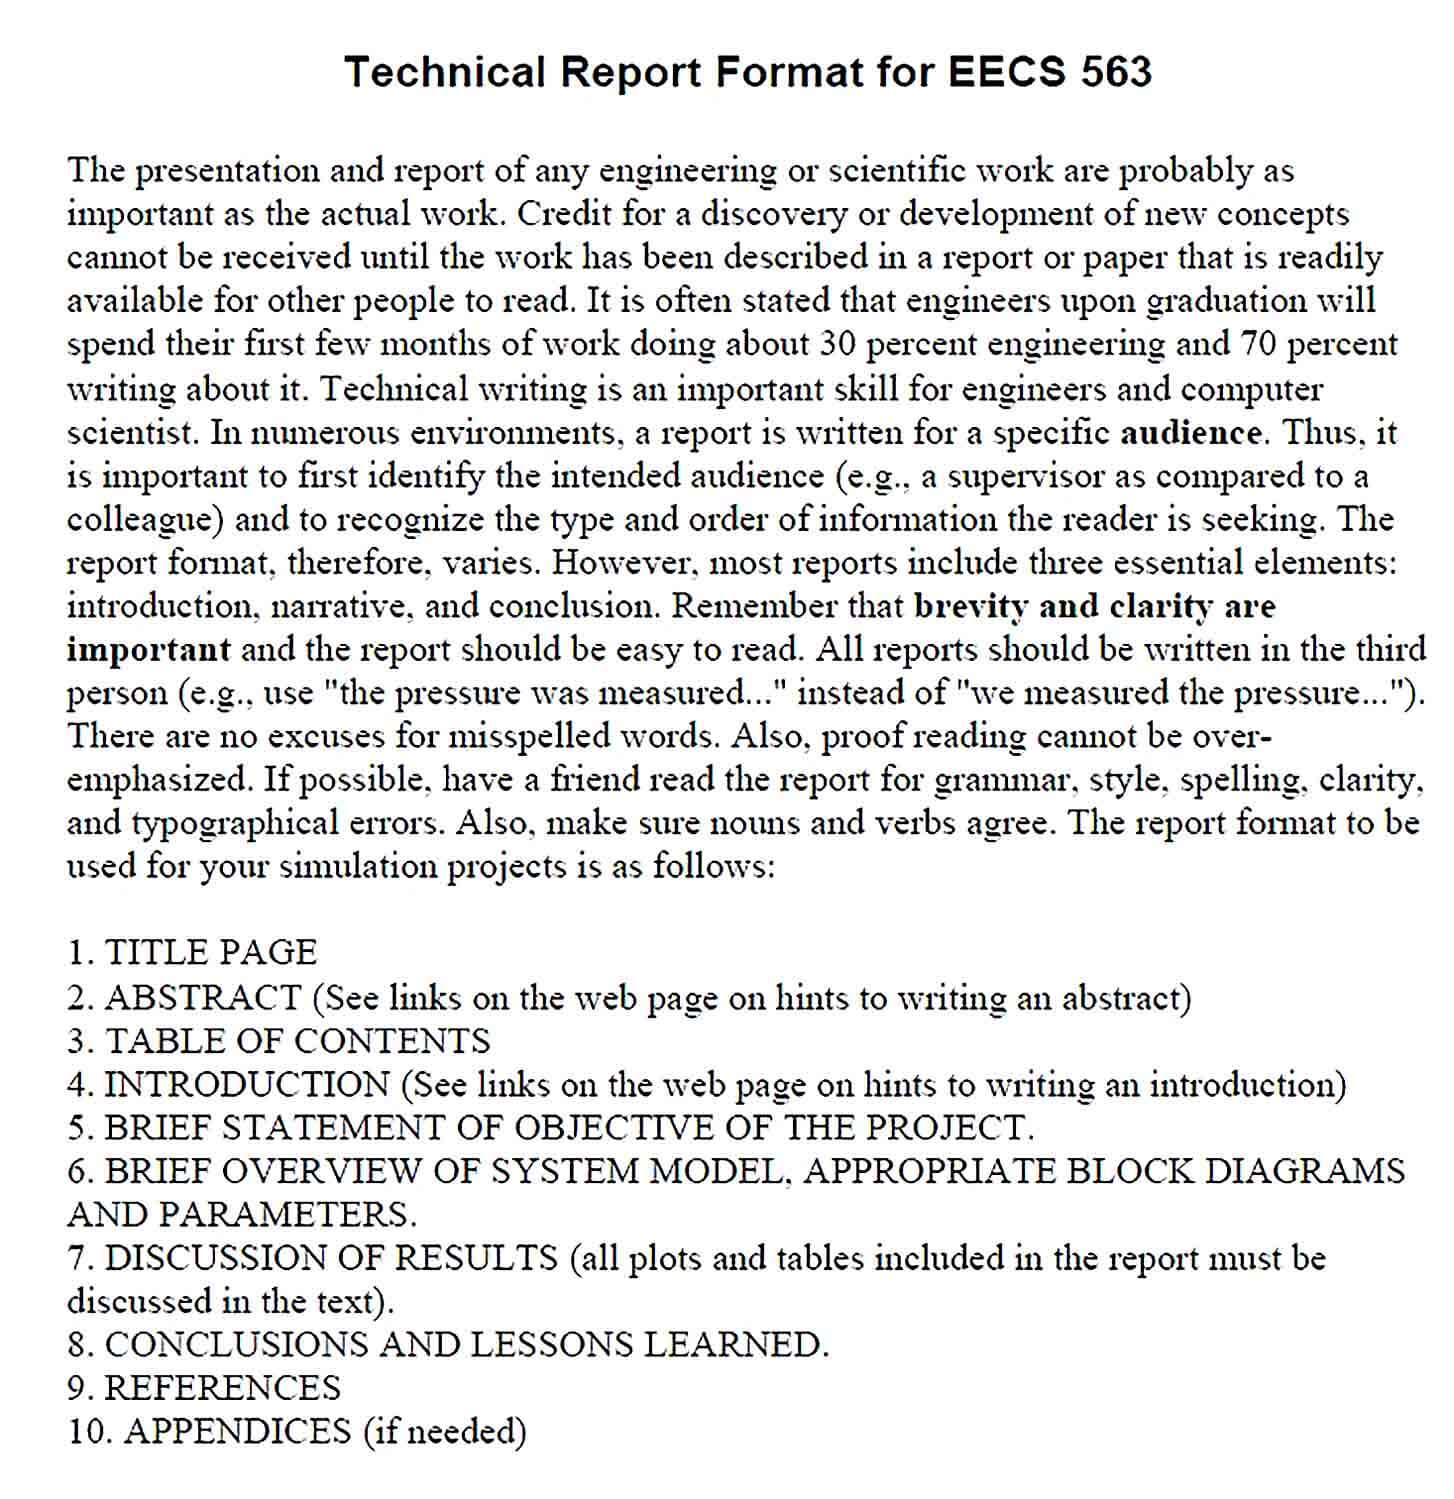 Sample Technical Report Format